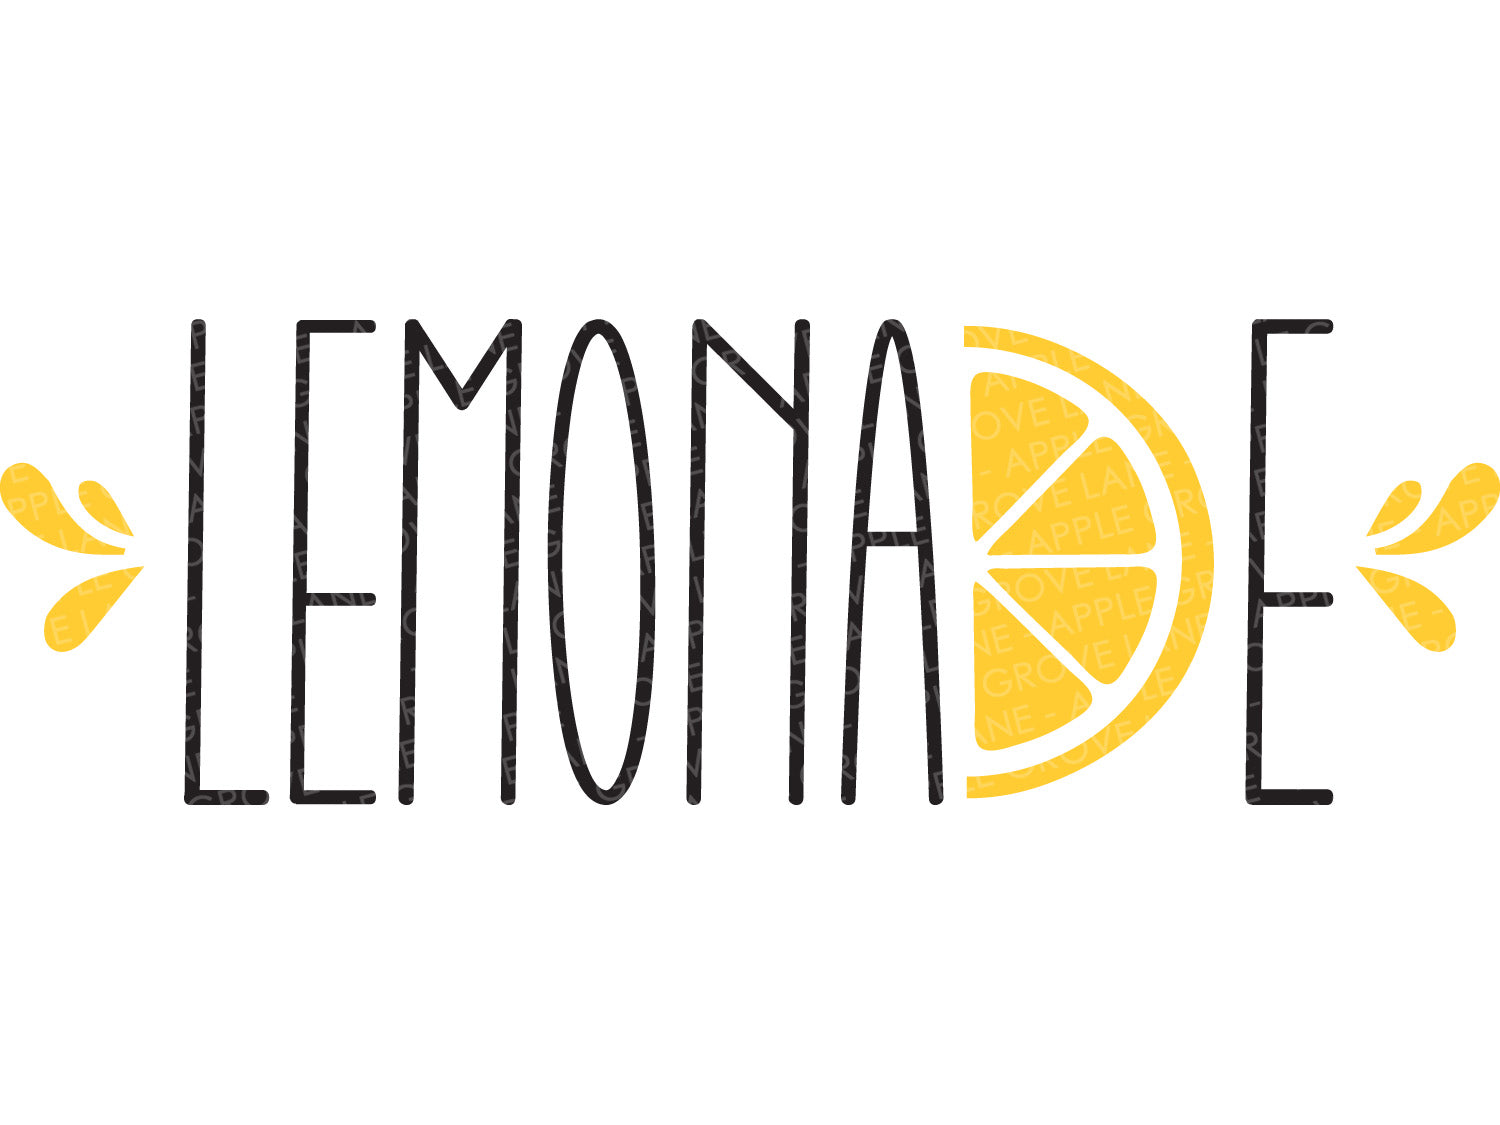 Lemonade Svg Cut File - Summer Svg - Lemons Svg - Make Lemonade Svg - Svg Eps Dxf Png